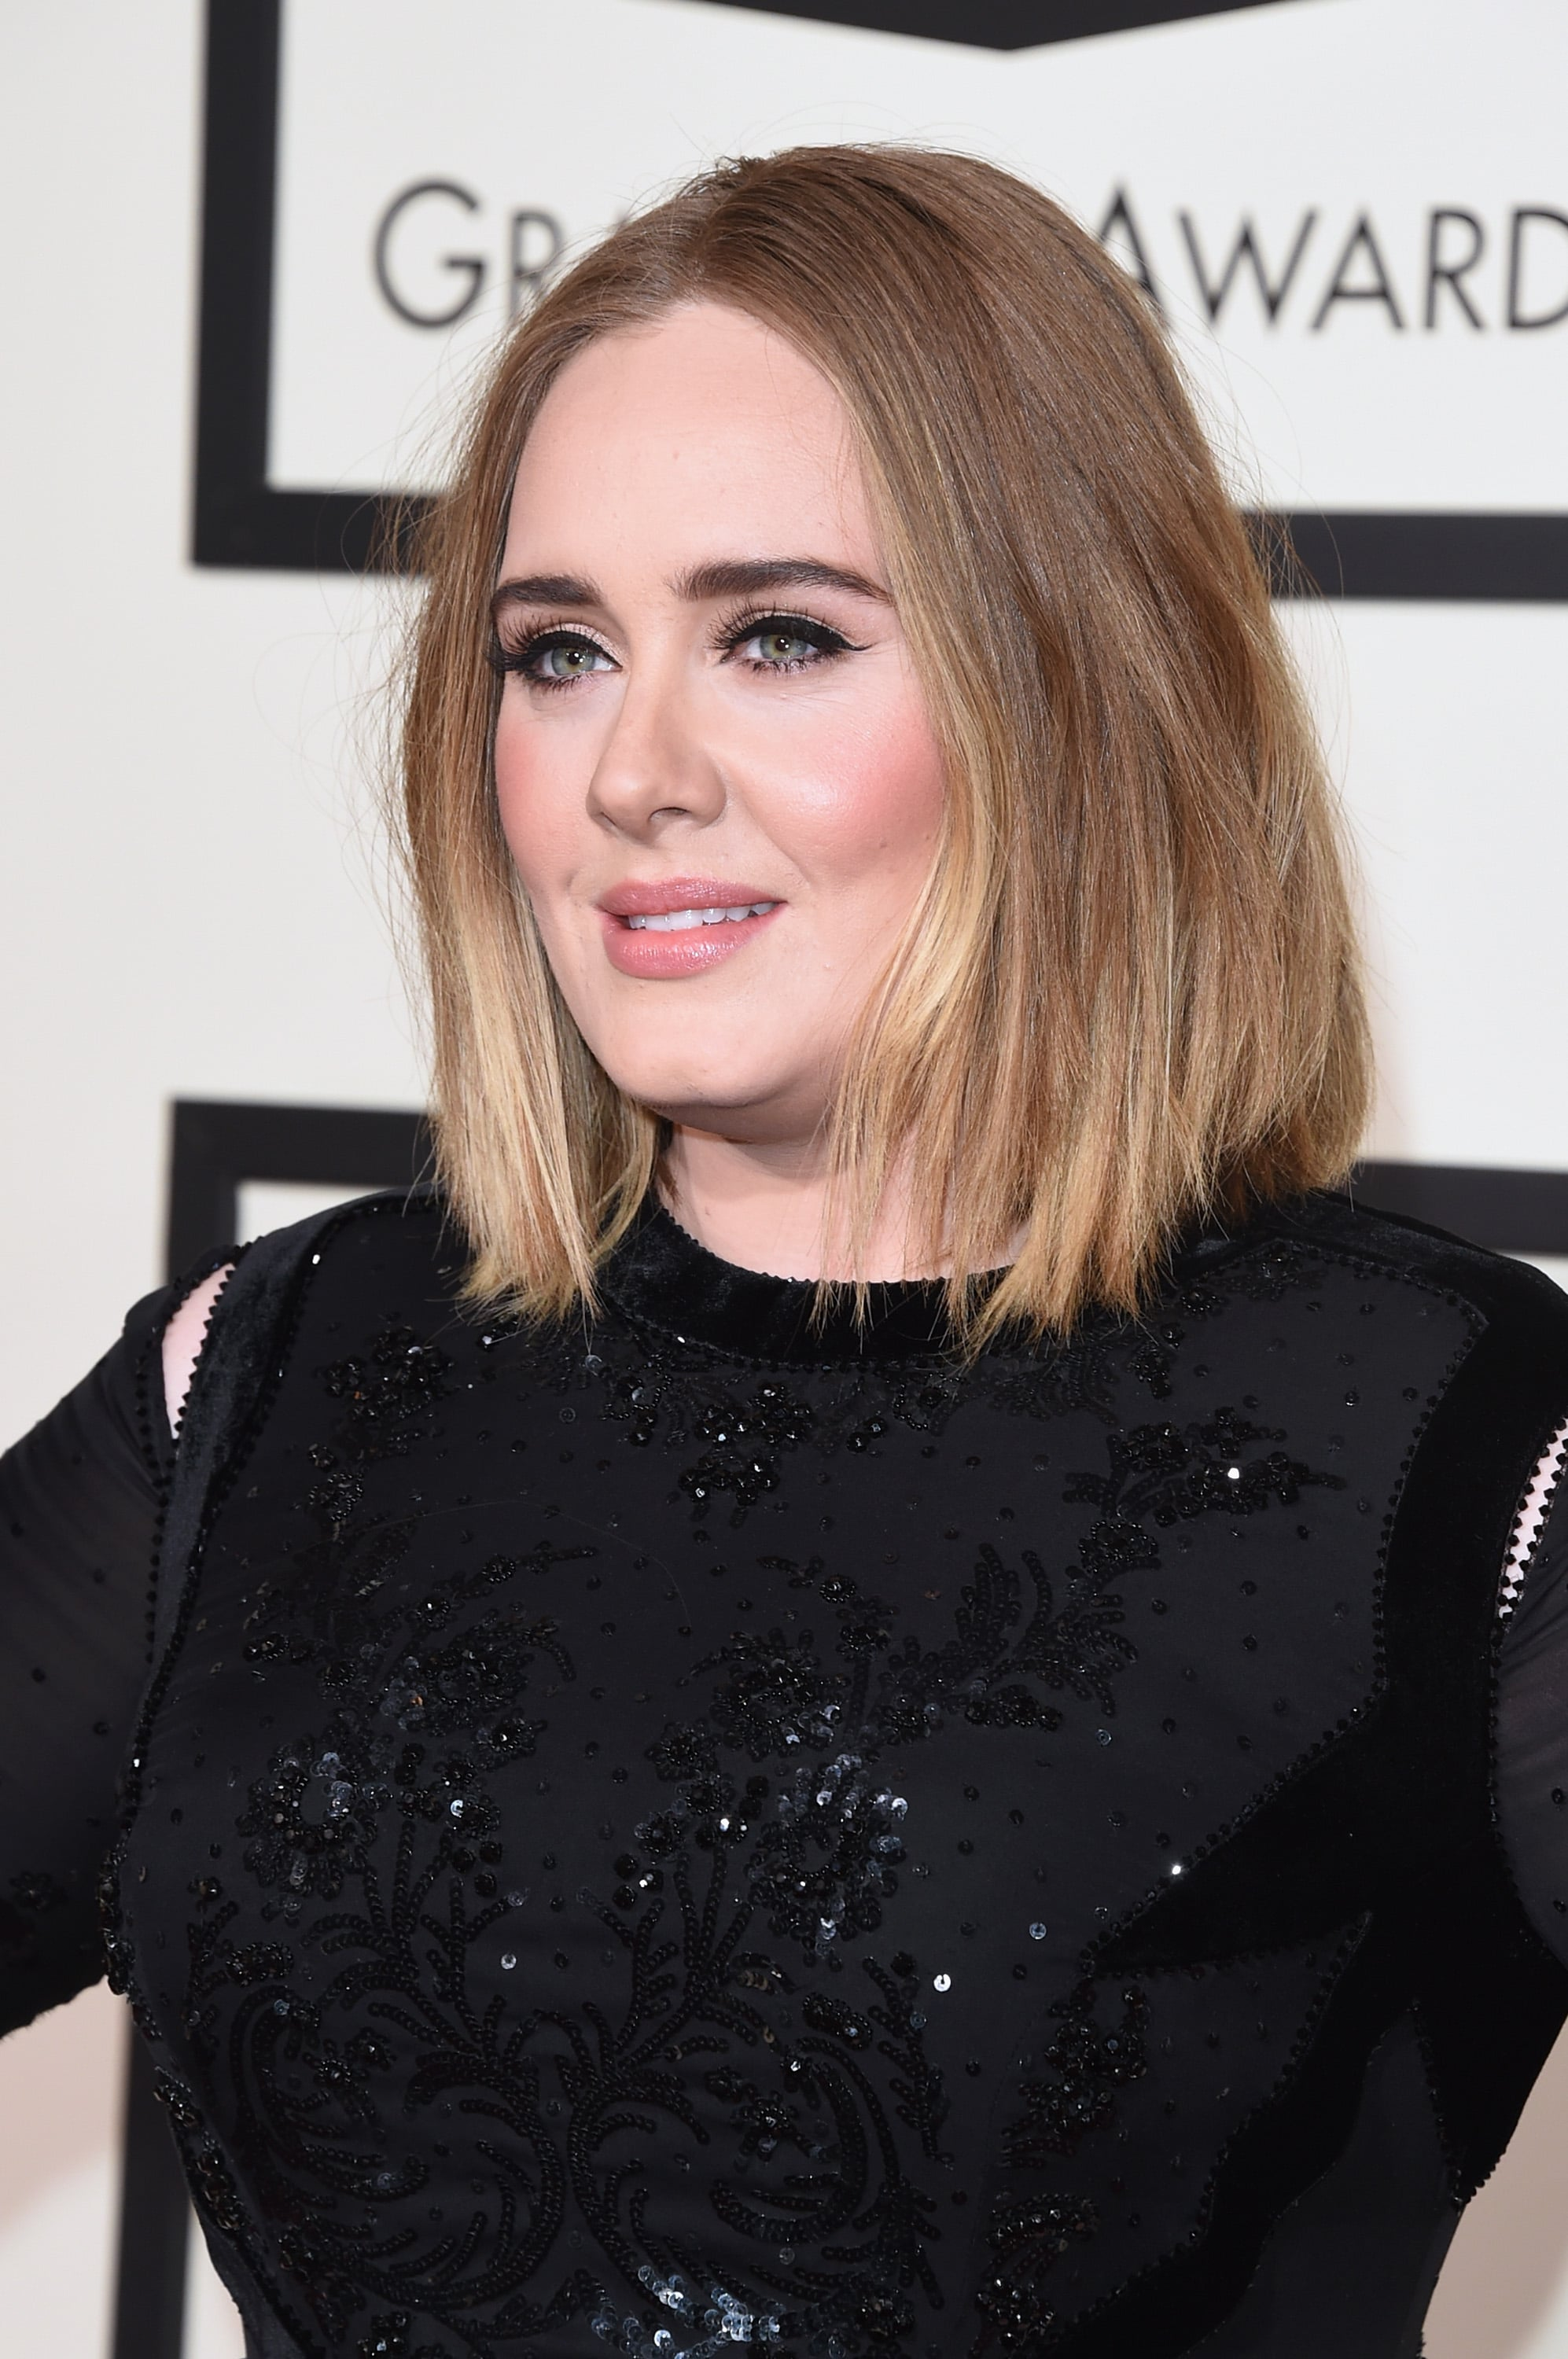 Adele Hair And Makeup At The 2016 Grammy Awards Popsugar Beauty